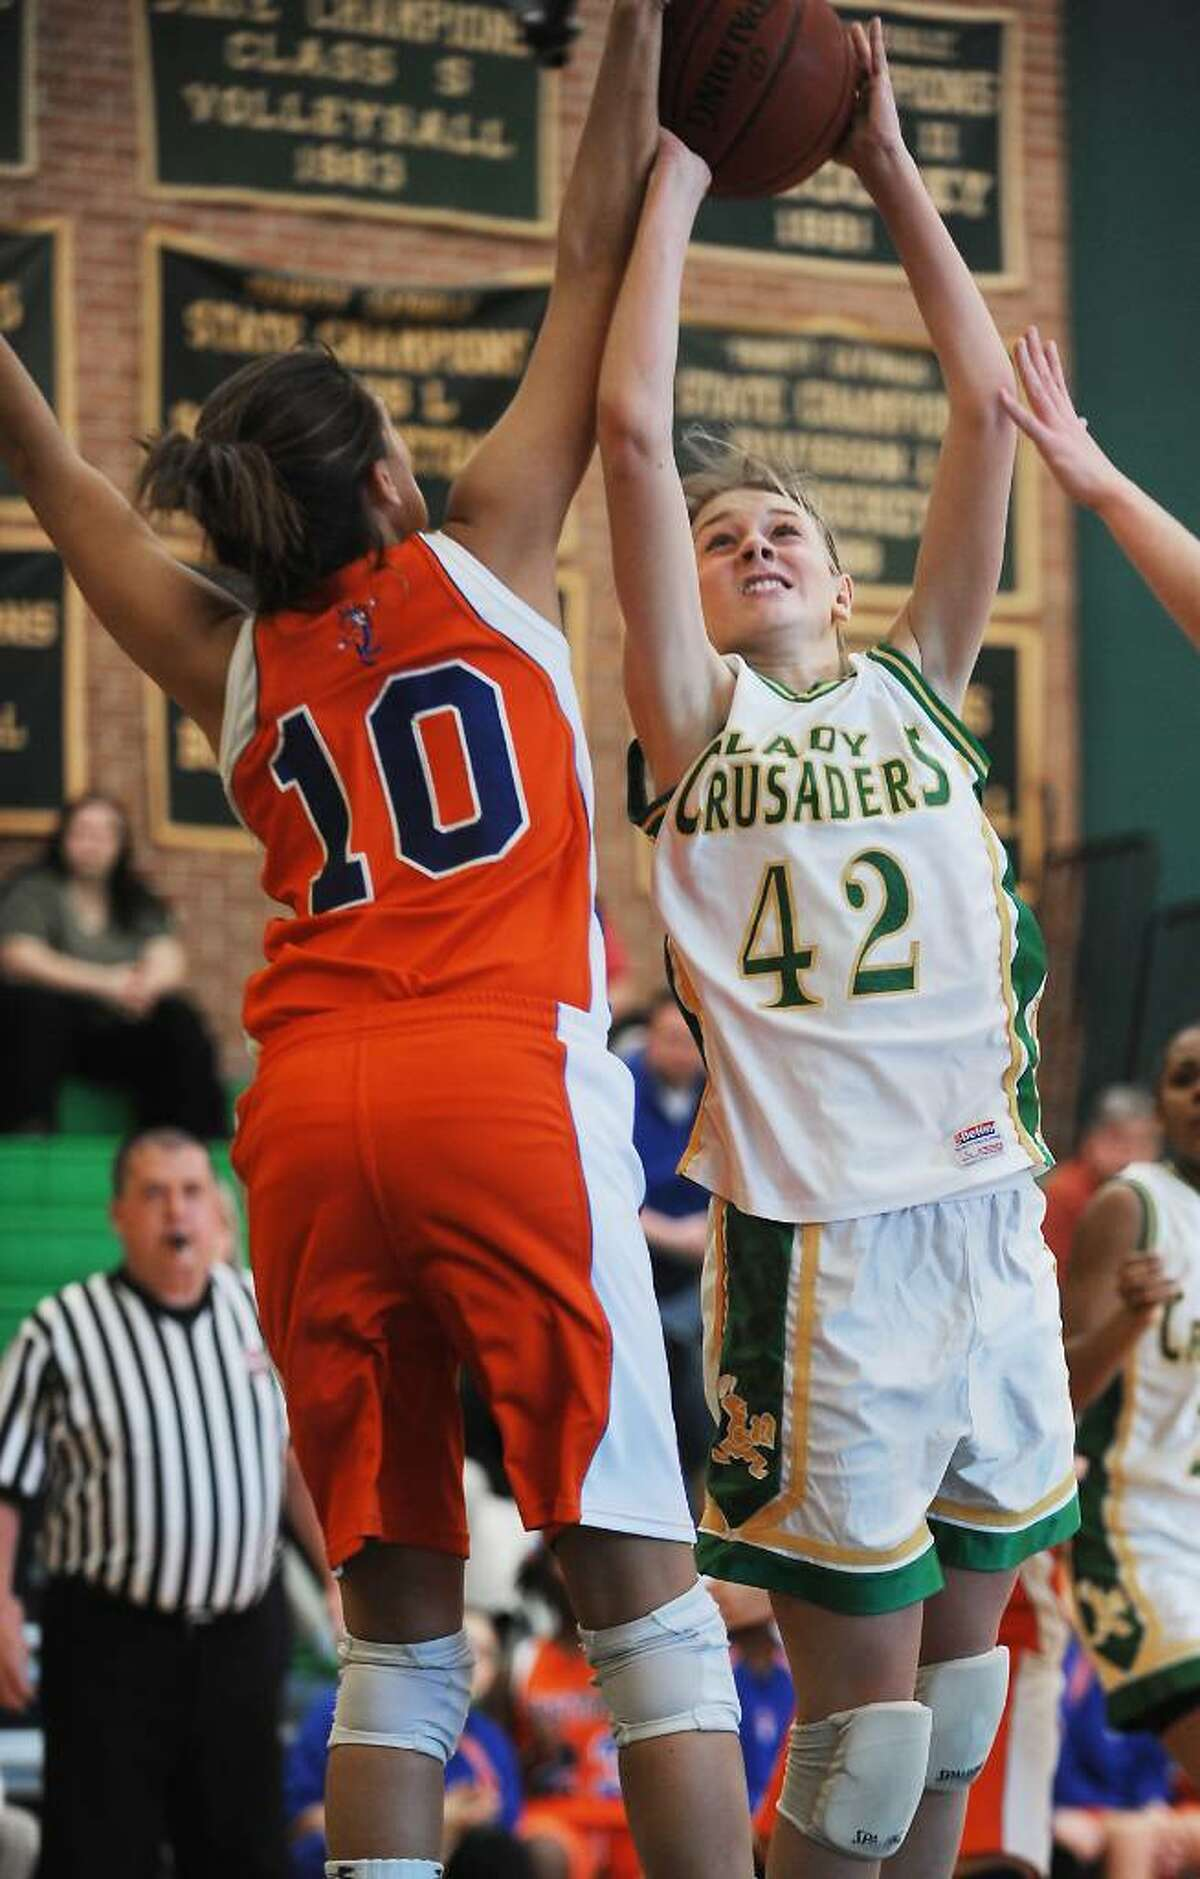 Trinity Catholic's Mackenzie Griffin goes up for a shot against Danbury's Casey Smith in the quarterfinals of the FCIAC girls basketball championship in Stamford, Conn. on Saturday, Feb. 20, 2010.